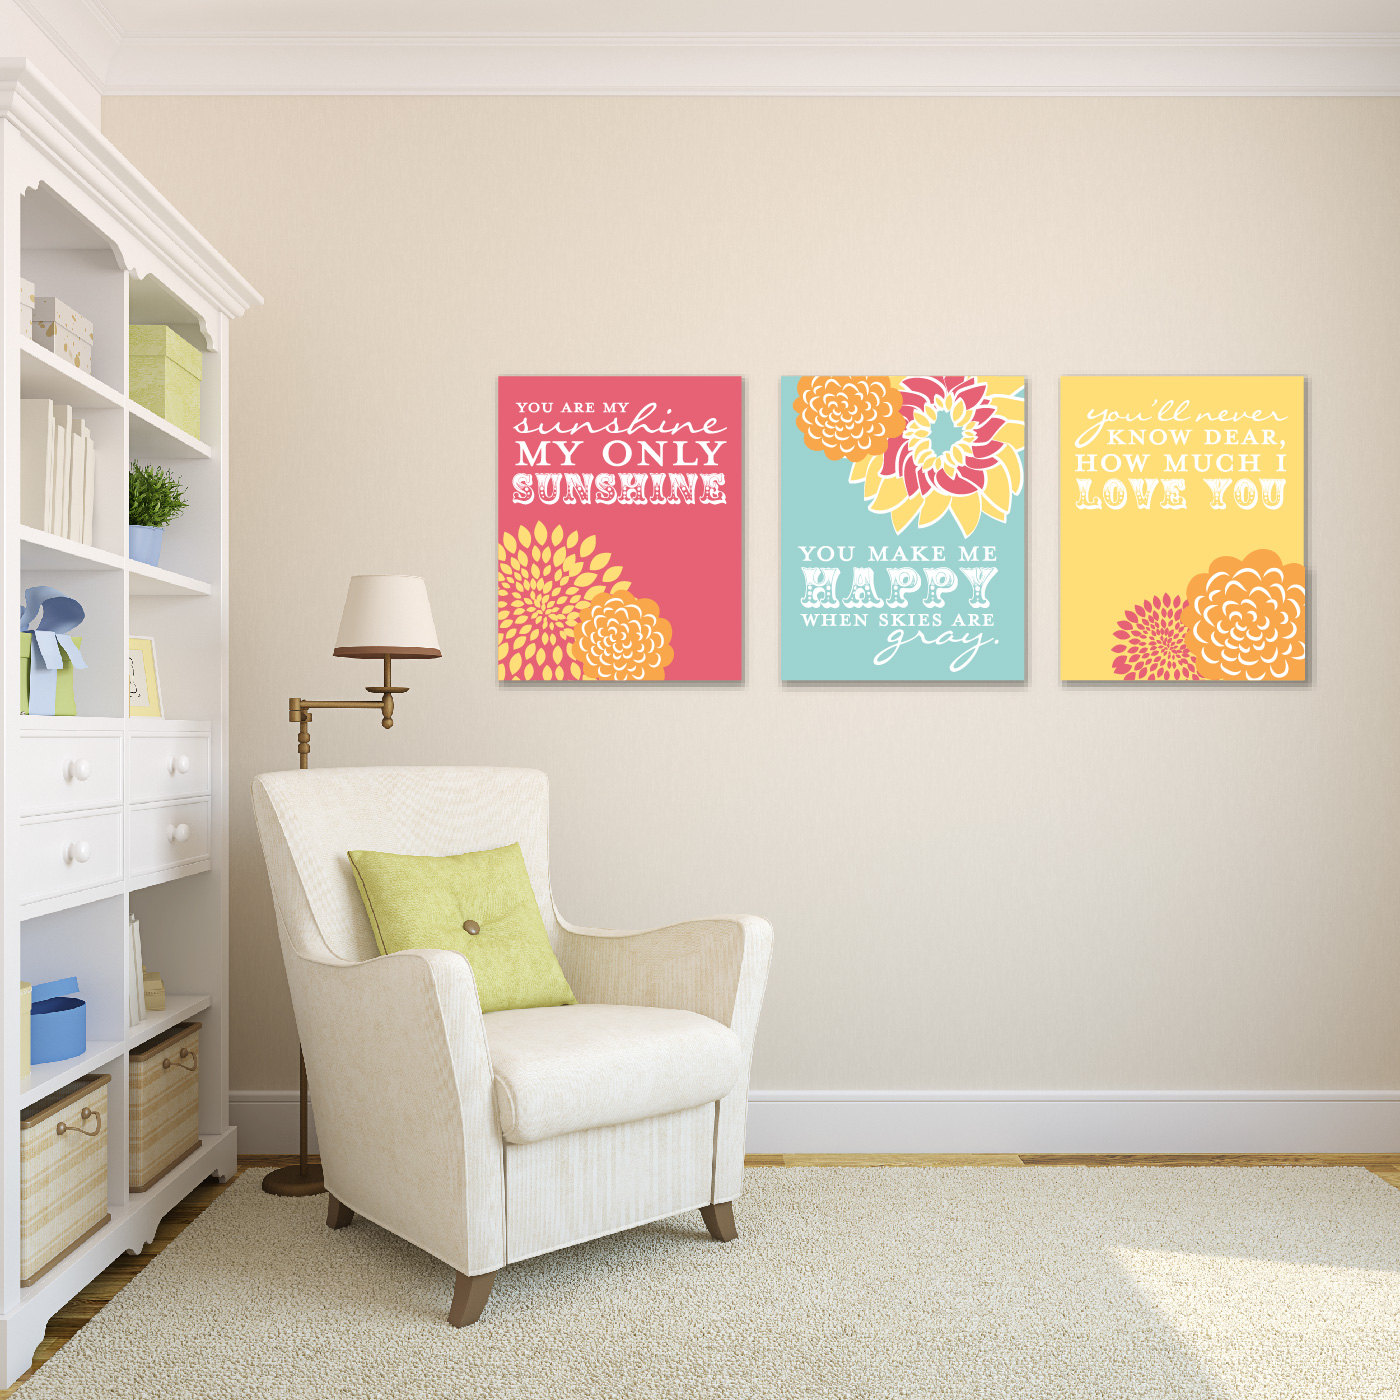 You Are My Sunshine Nursery Kids Room Giclée Art Prints 3 Print Set Custom Match Colors To Your 8 X 10 52 00 Via Etsy